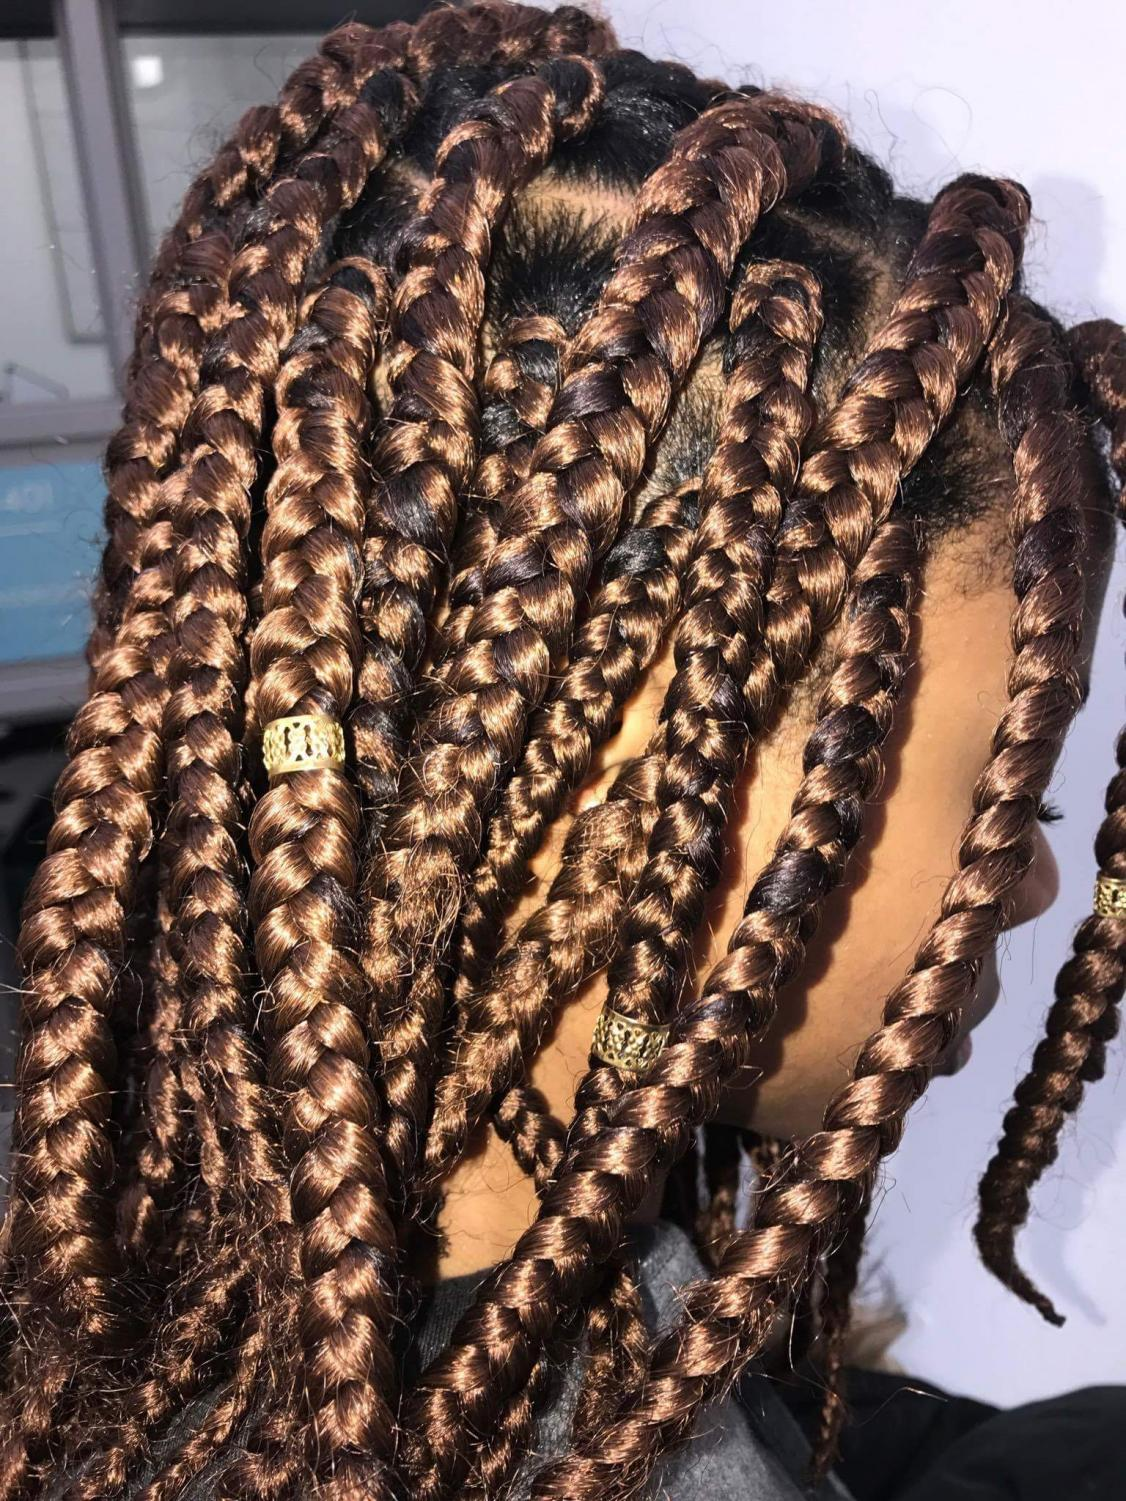 """The hairstyles of black women have been viewed as """"unprofessional"""" by some."""